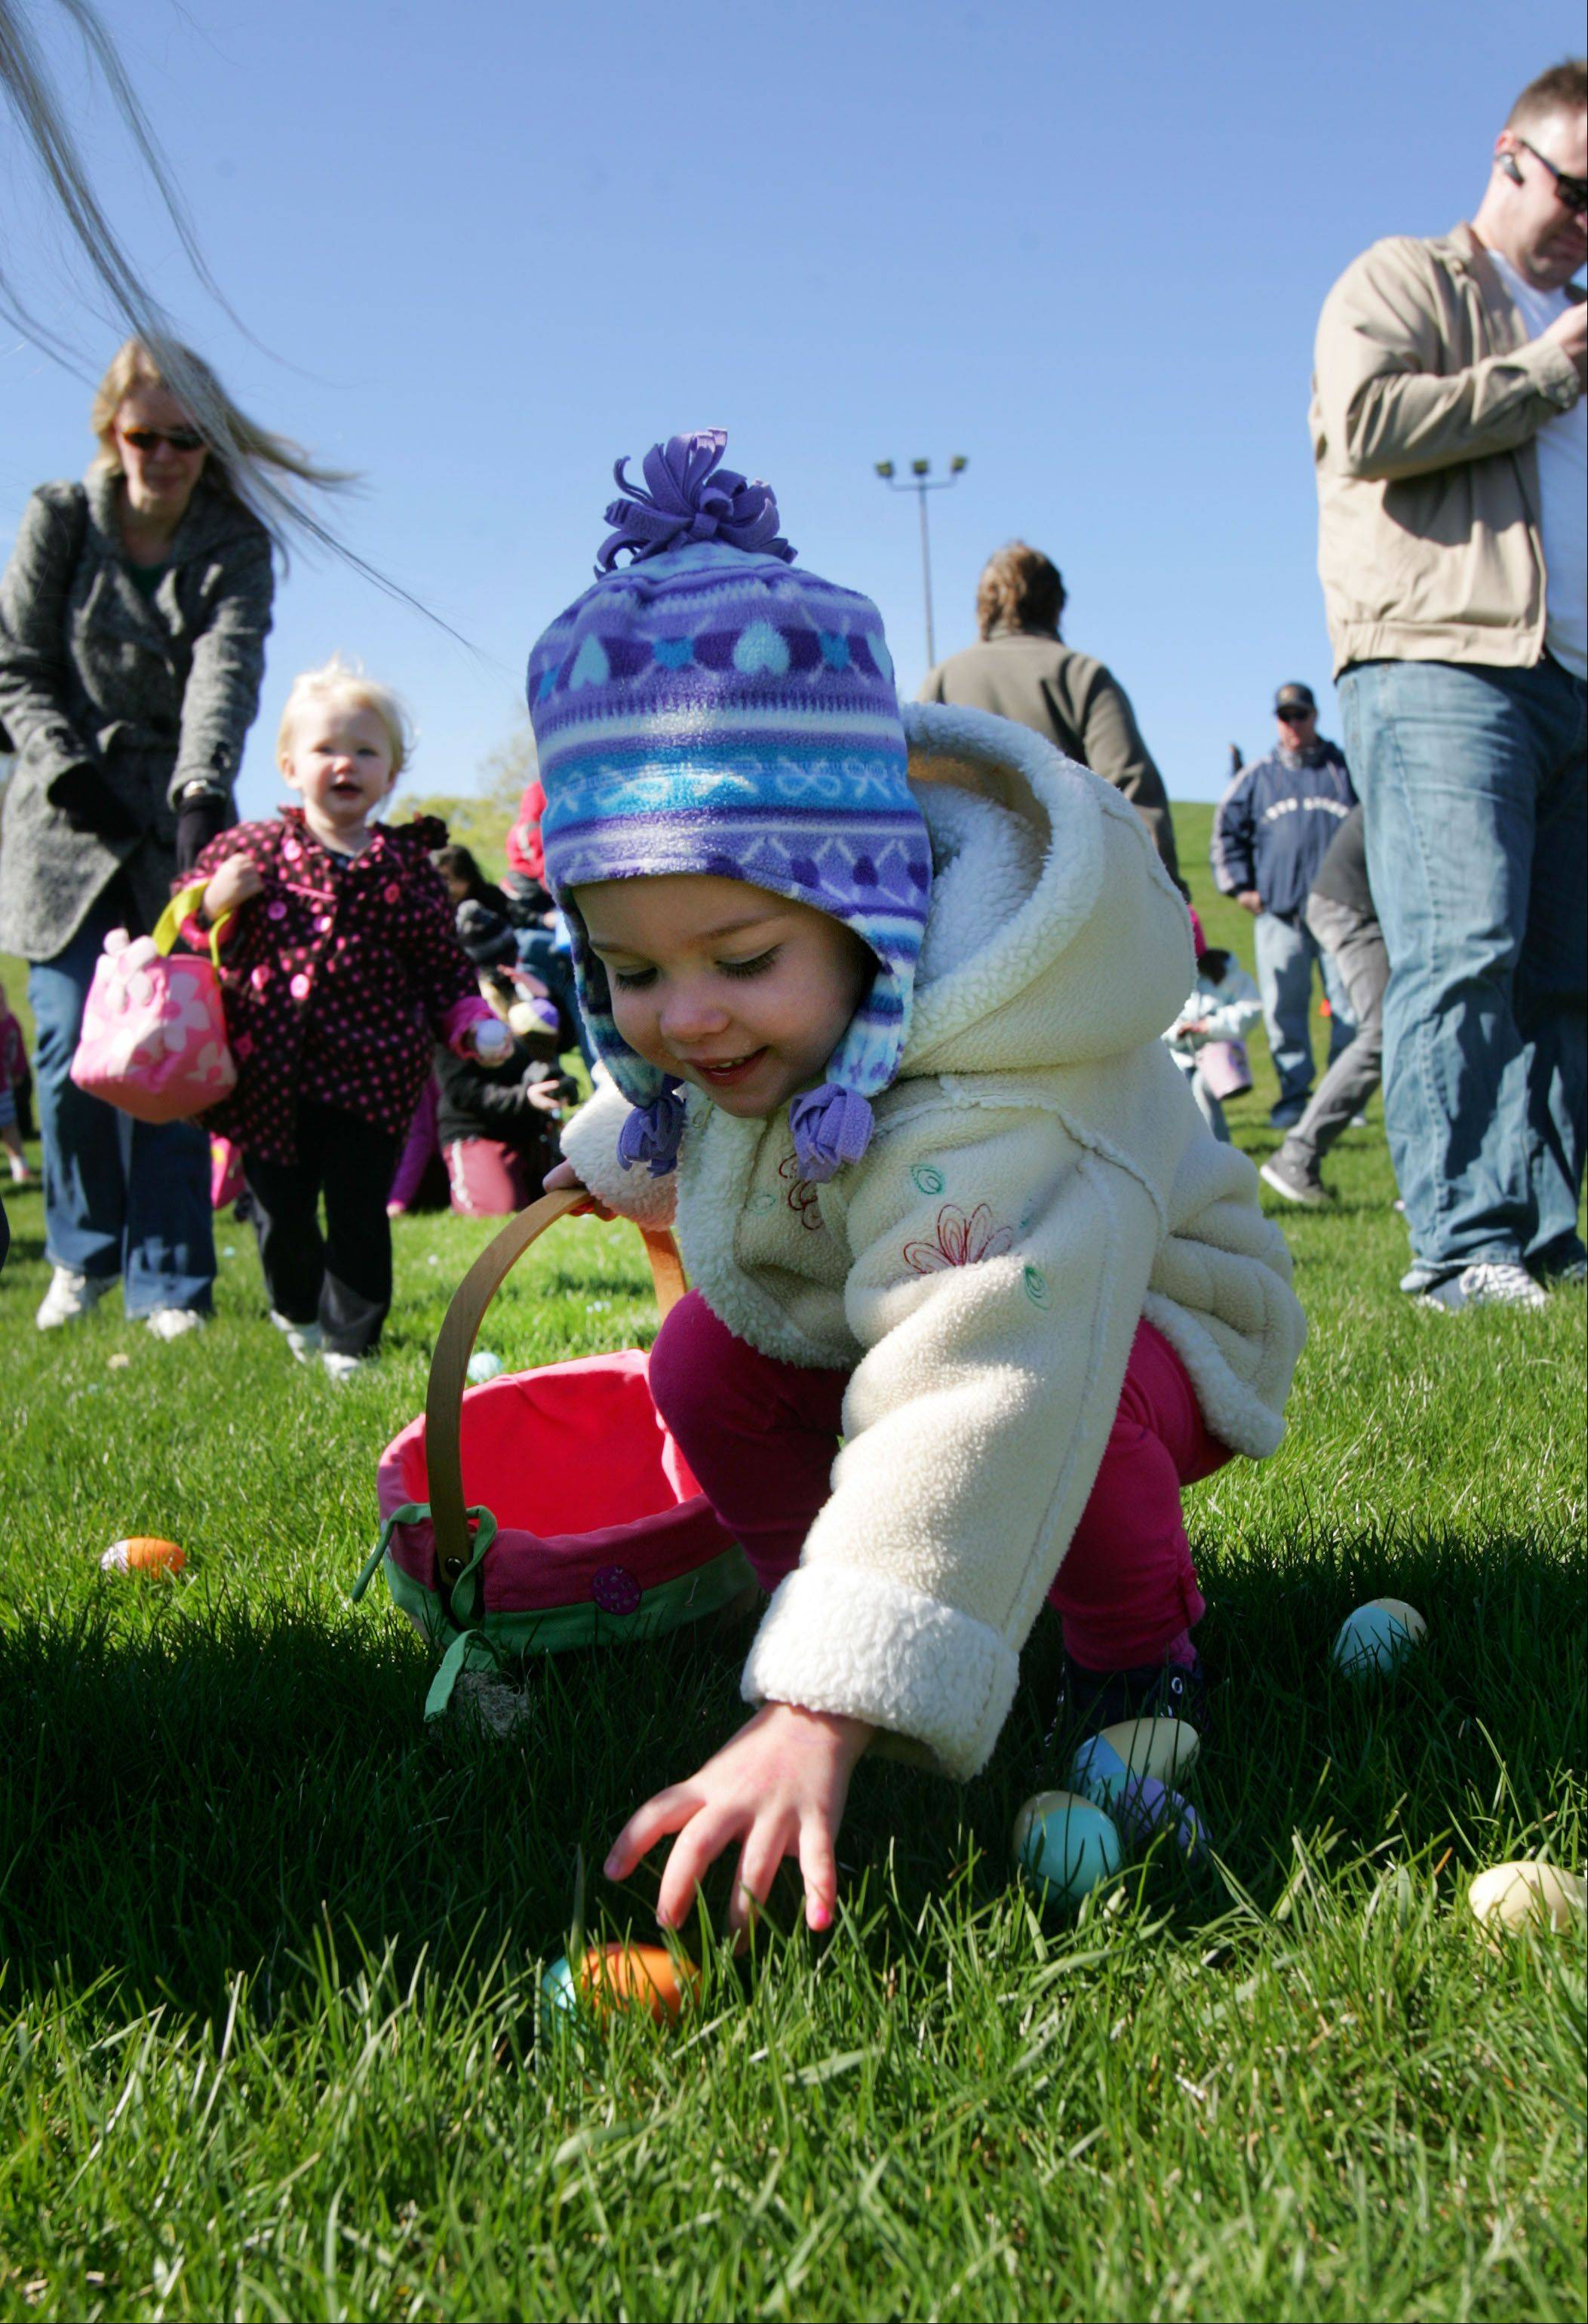 2-year-old Aly Hughes of Round Lake participates in an easter egg hunt at Keith Mione Community Park in Mundelein Friday Morning.